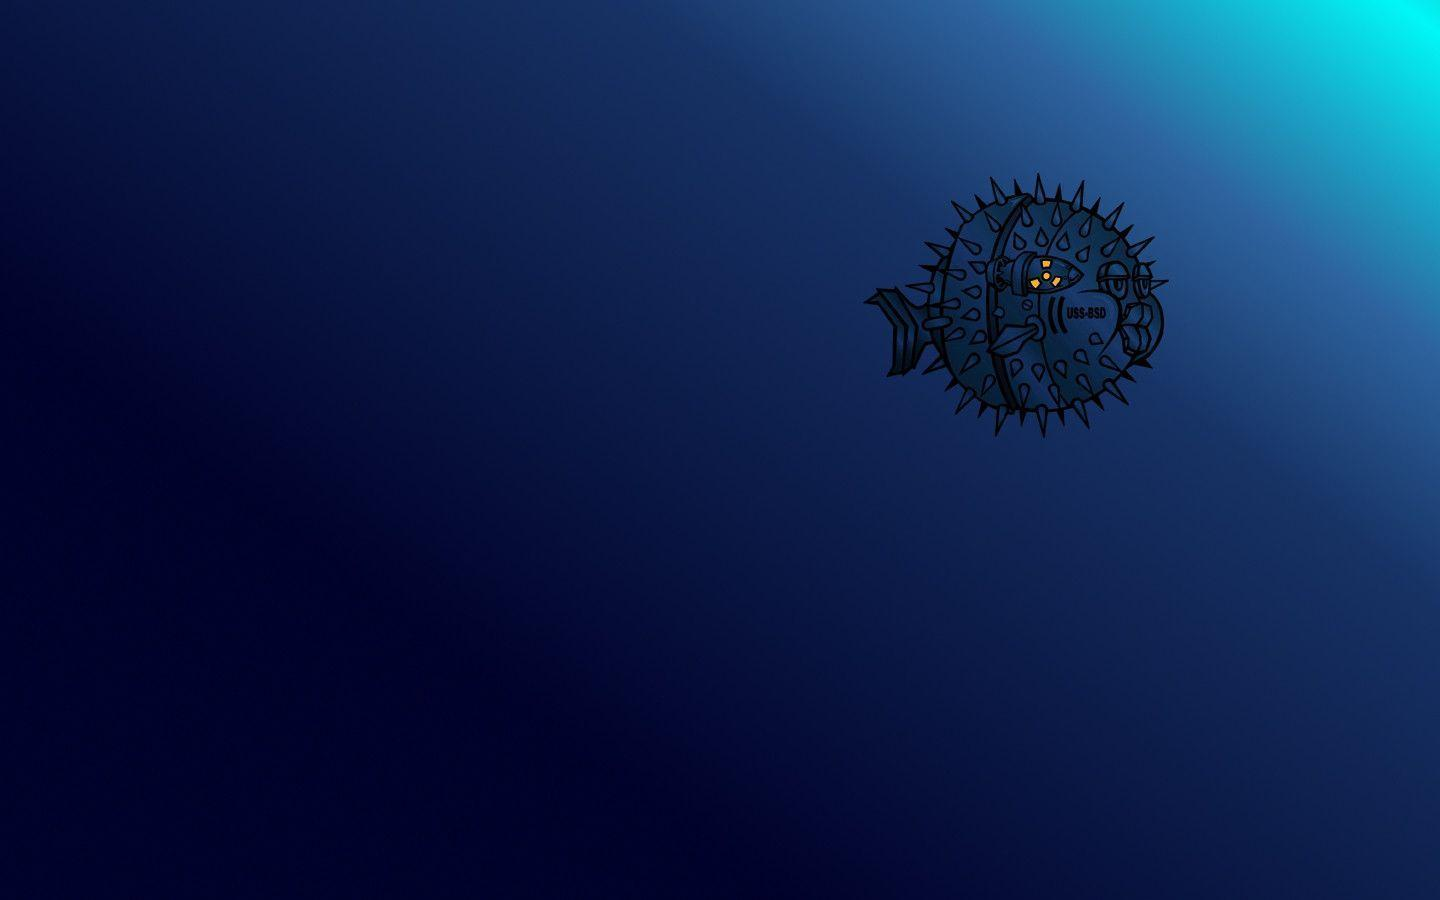 The Image of Blue Openbsd Wallpapers Fresh HD Wallpapers